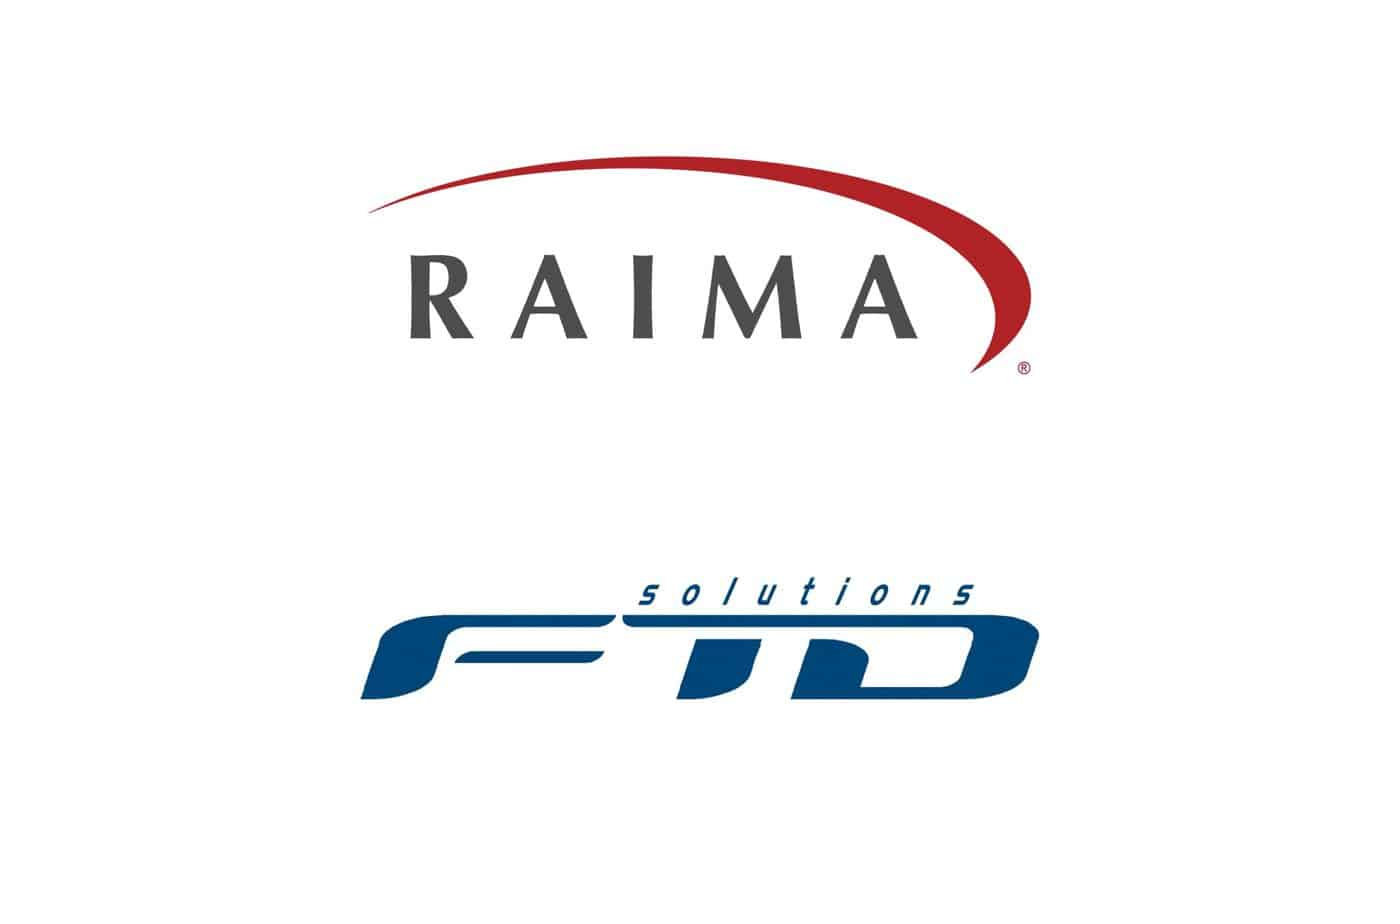 Raima and ftd solutions